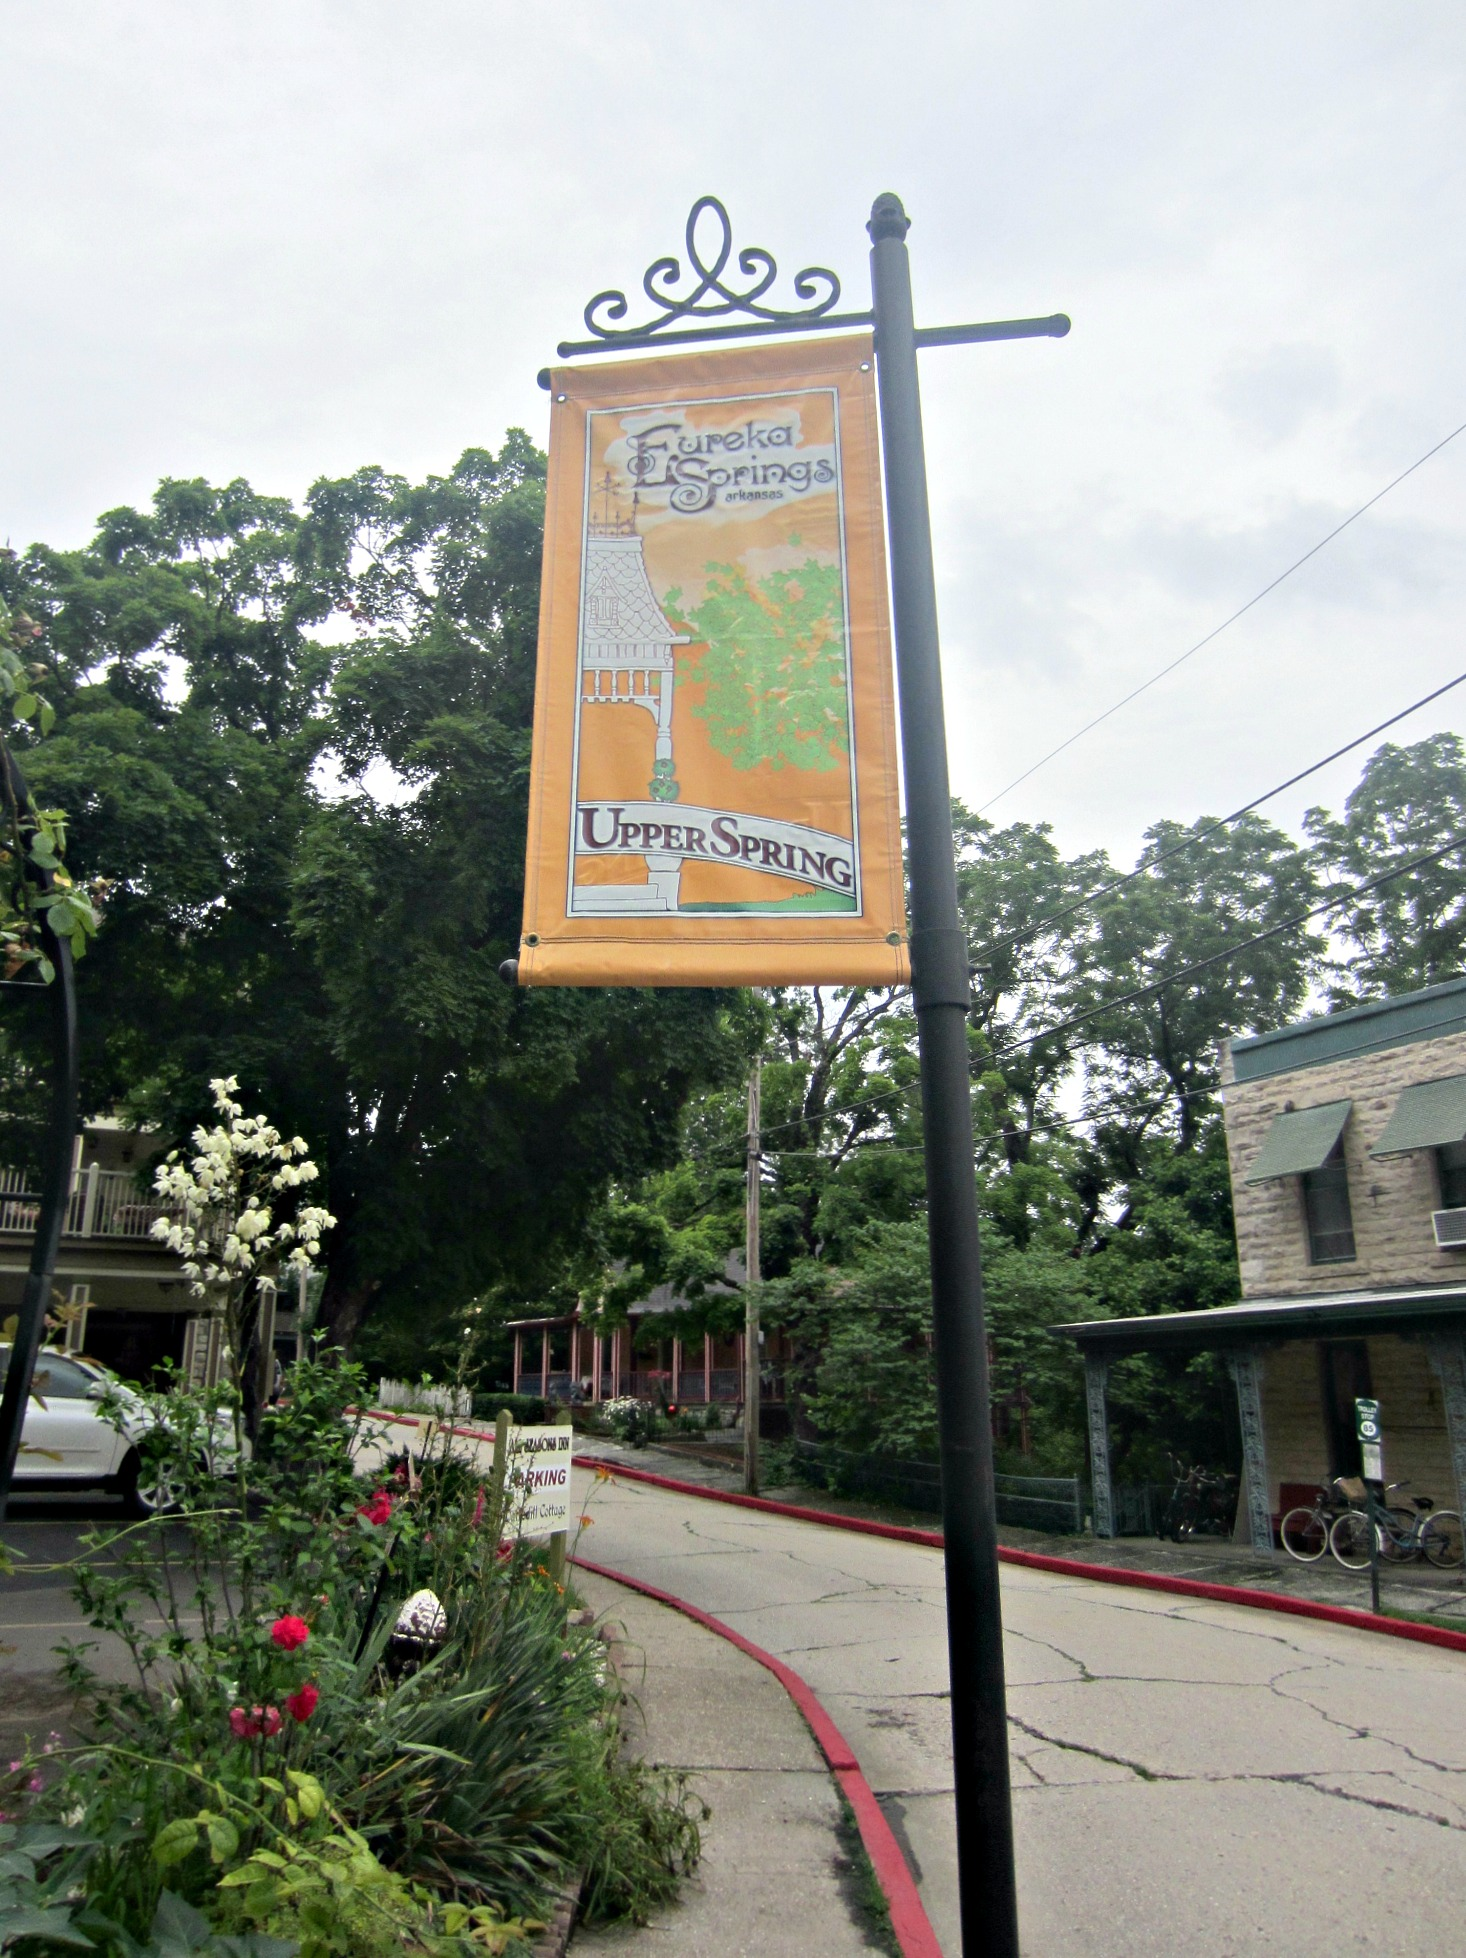 Downtown Historic Eureka Springs